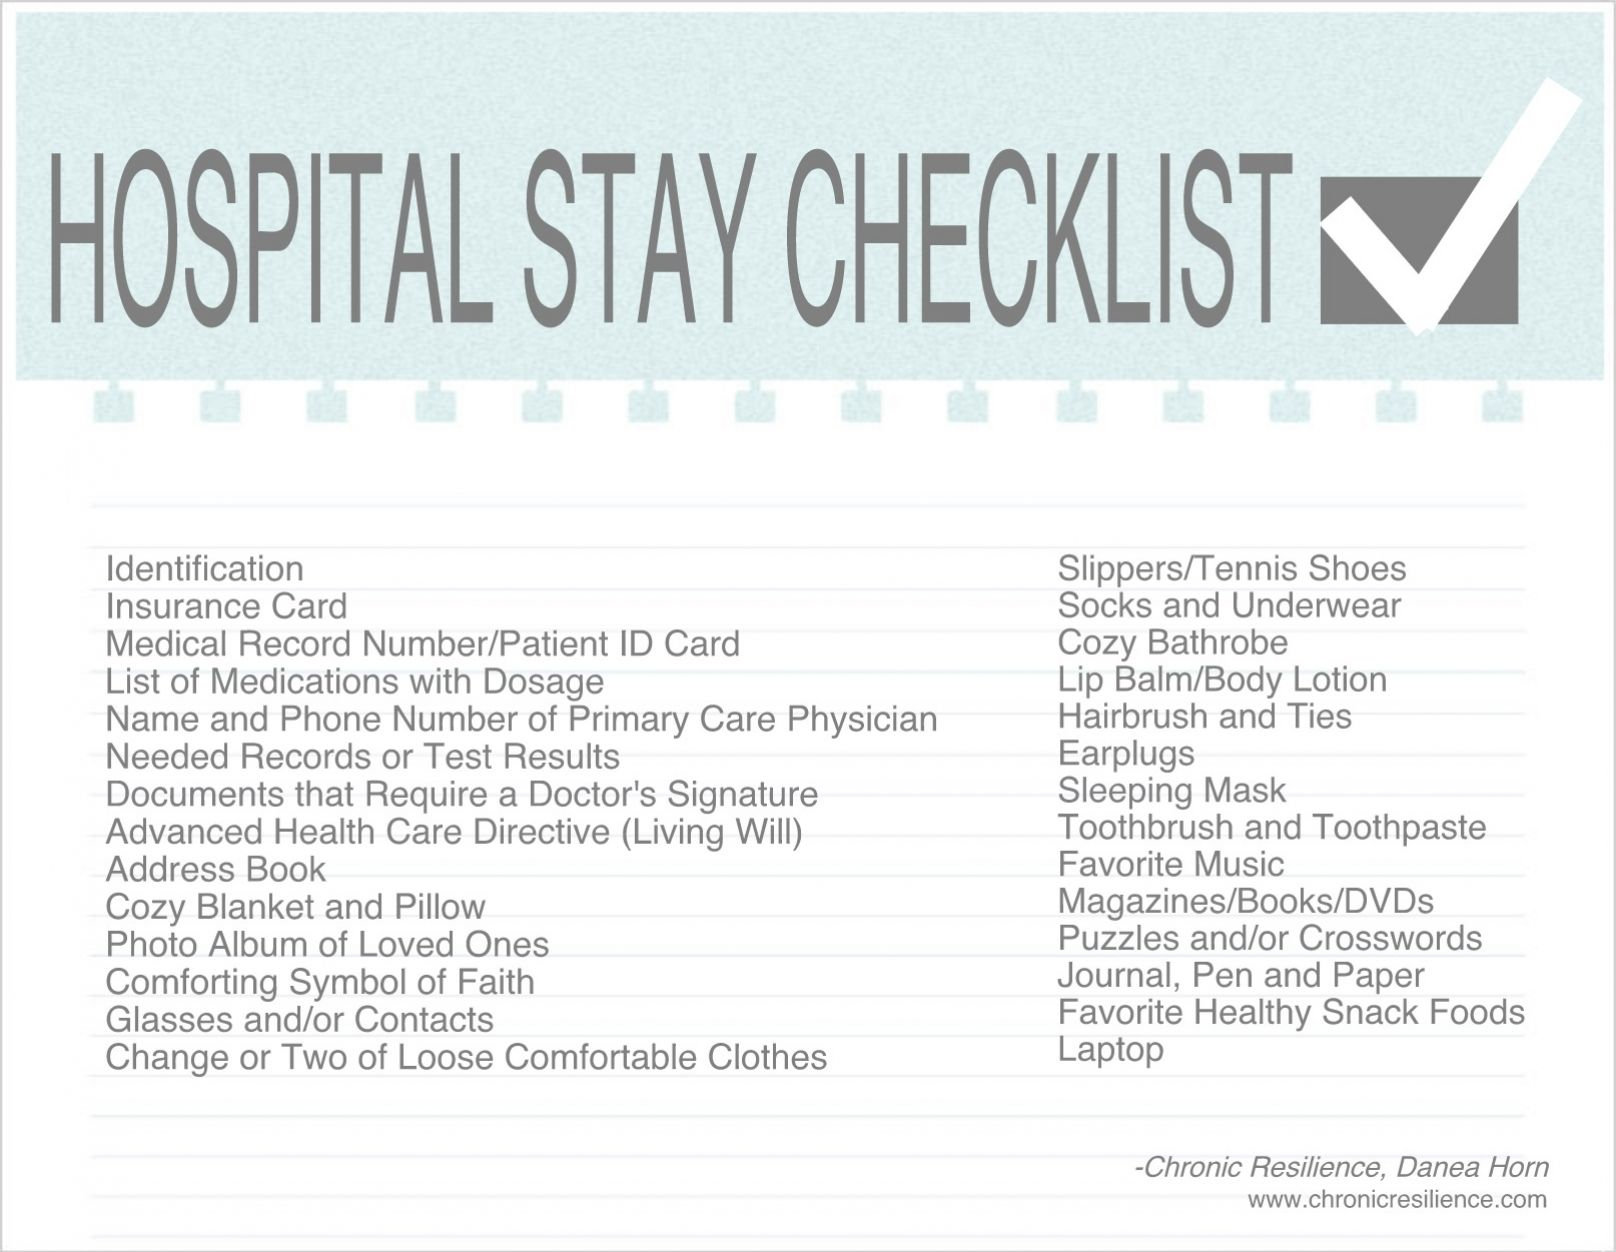 Hospital Stay Checklist